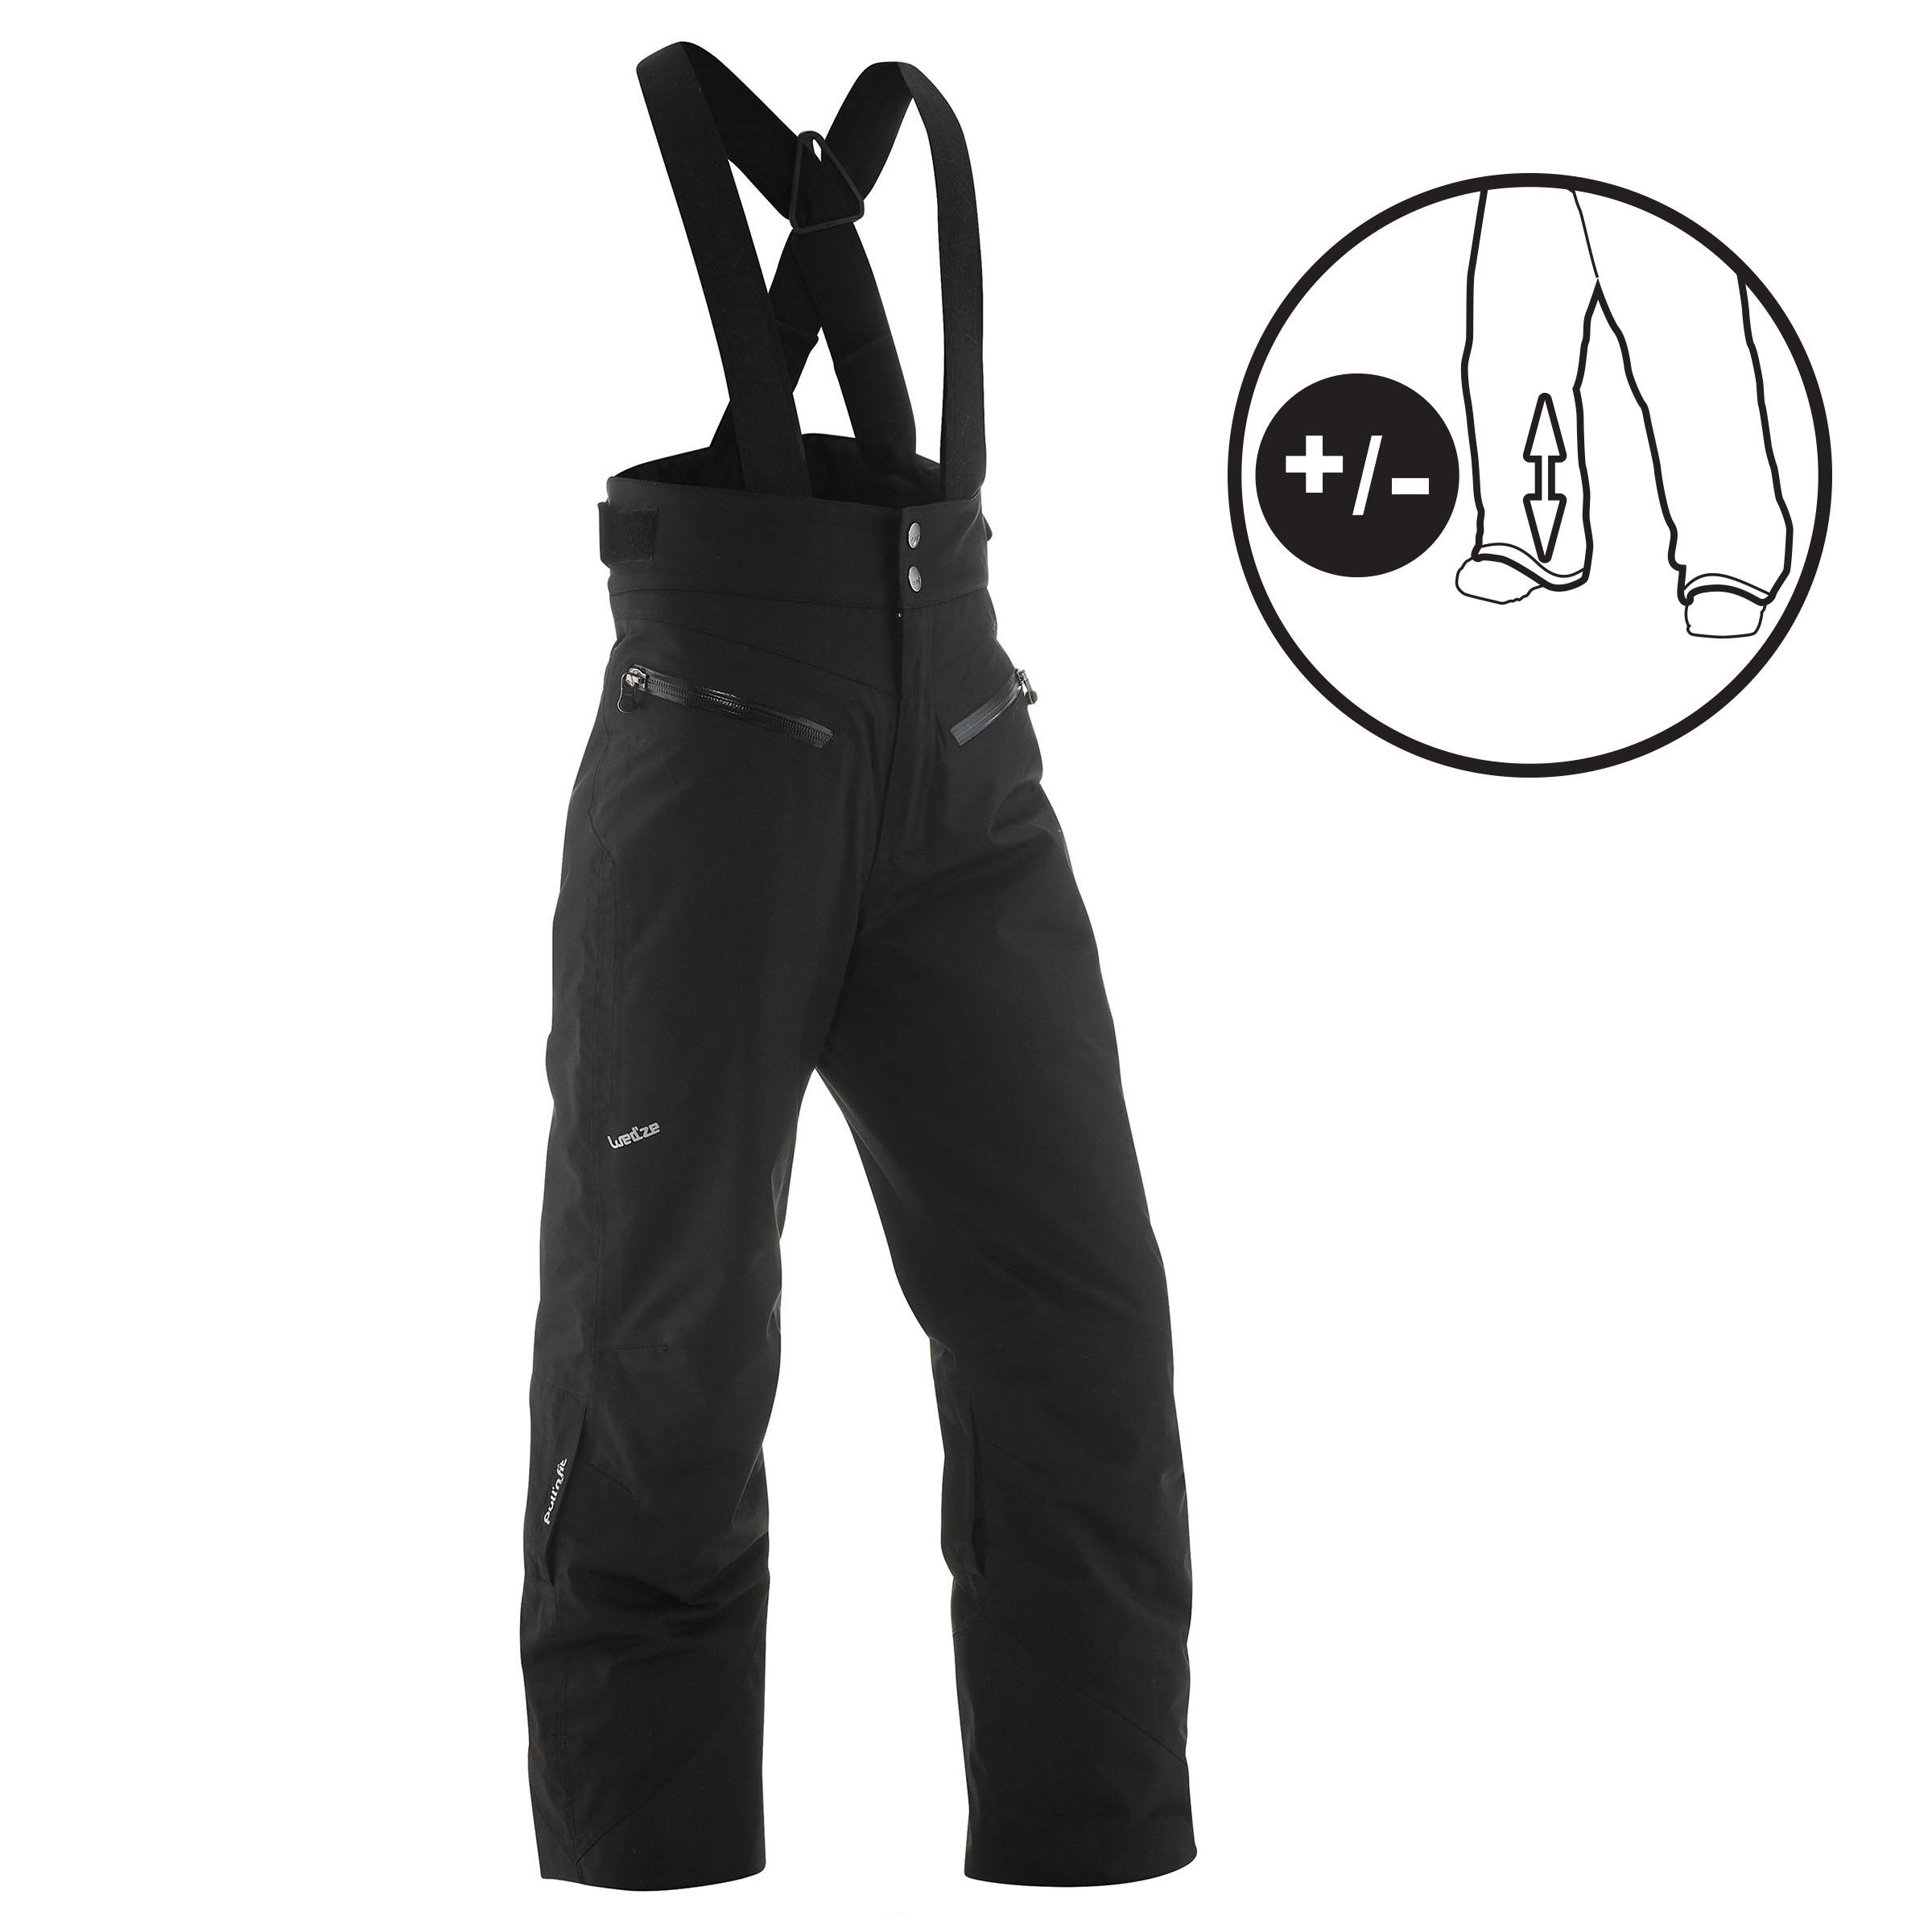 Children's Ski Pants Ski-P PA 900 PNF - Black